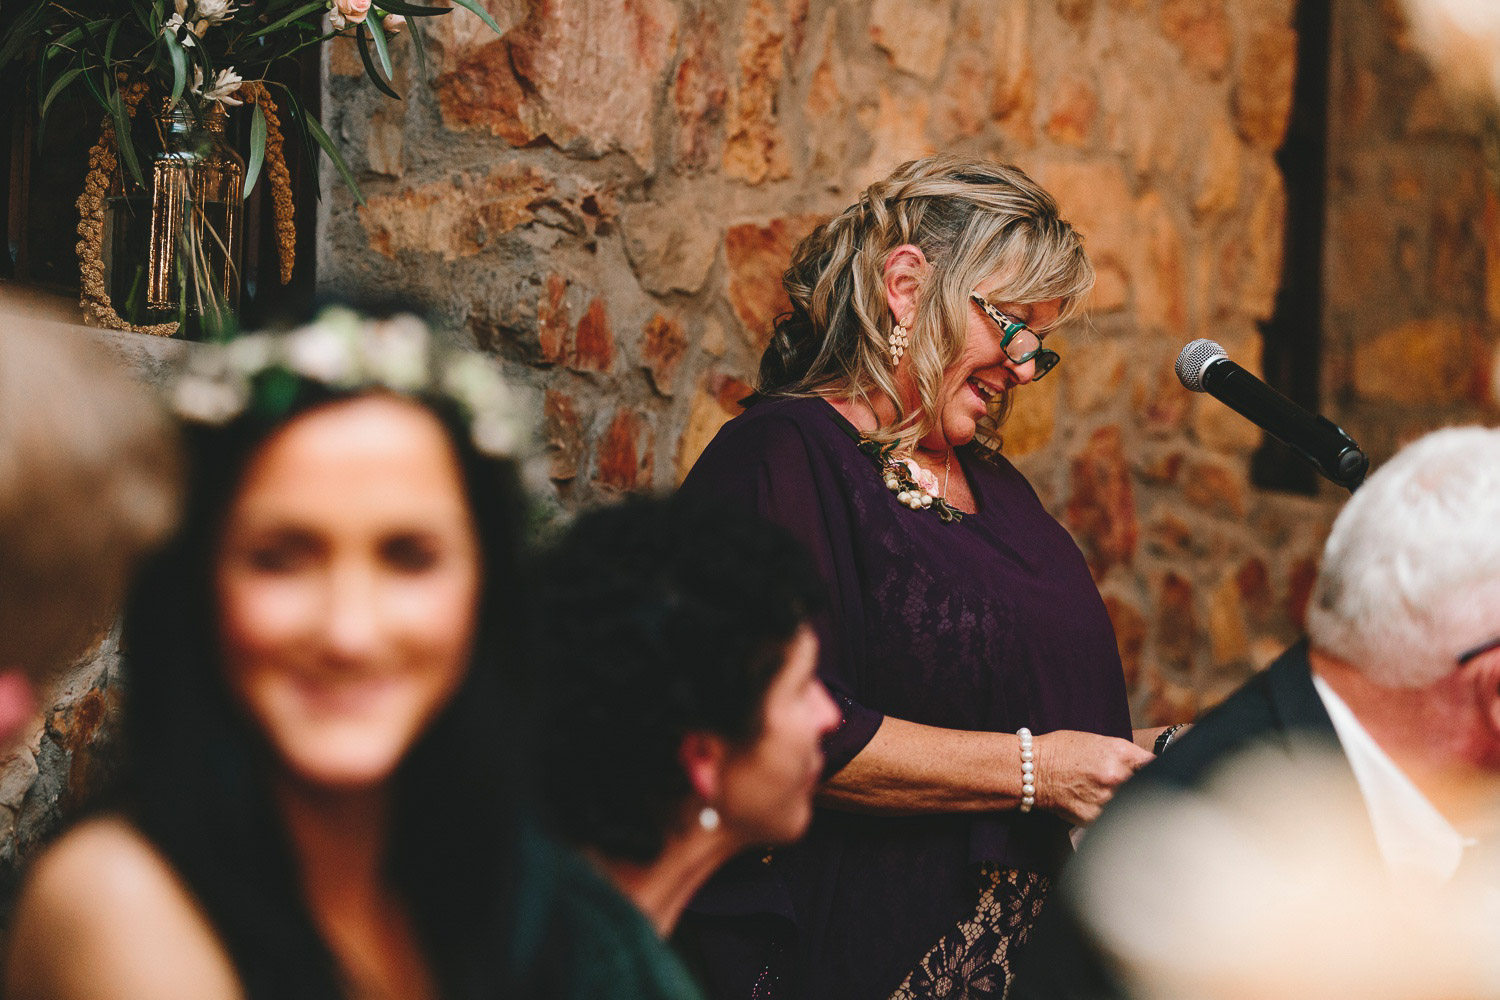 western-cape-photoghers-gen-scott-greyton-wedding-photography-charlie-ray142.jpg